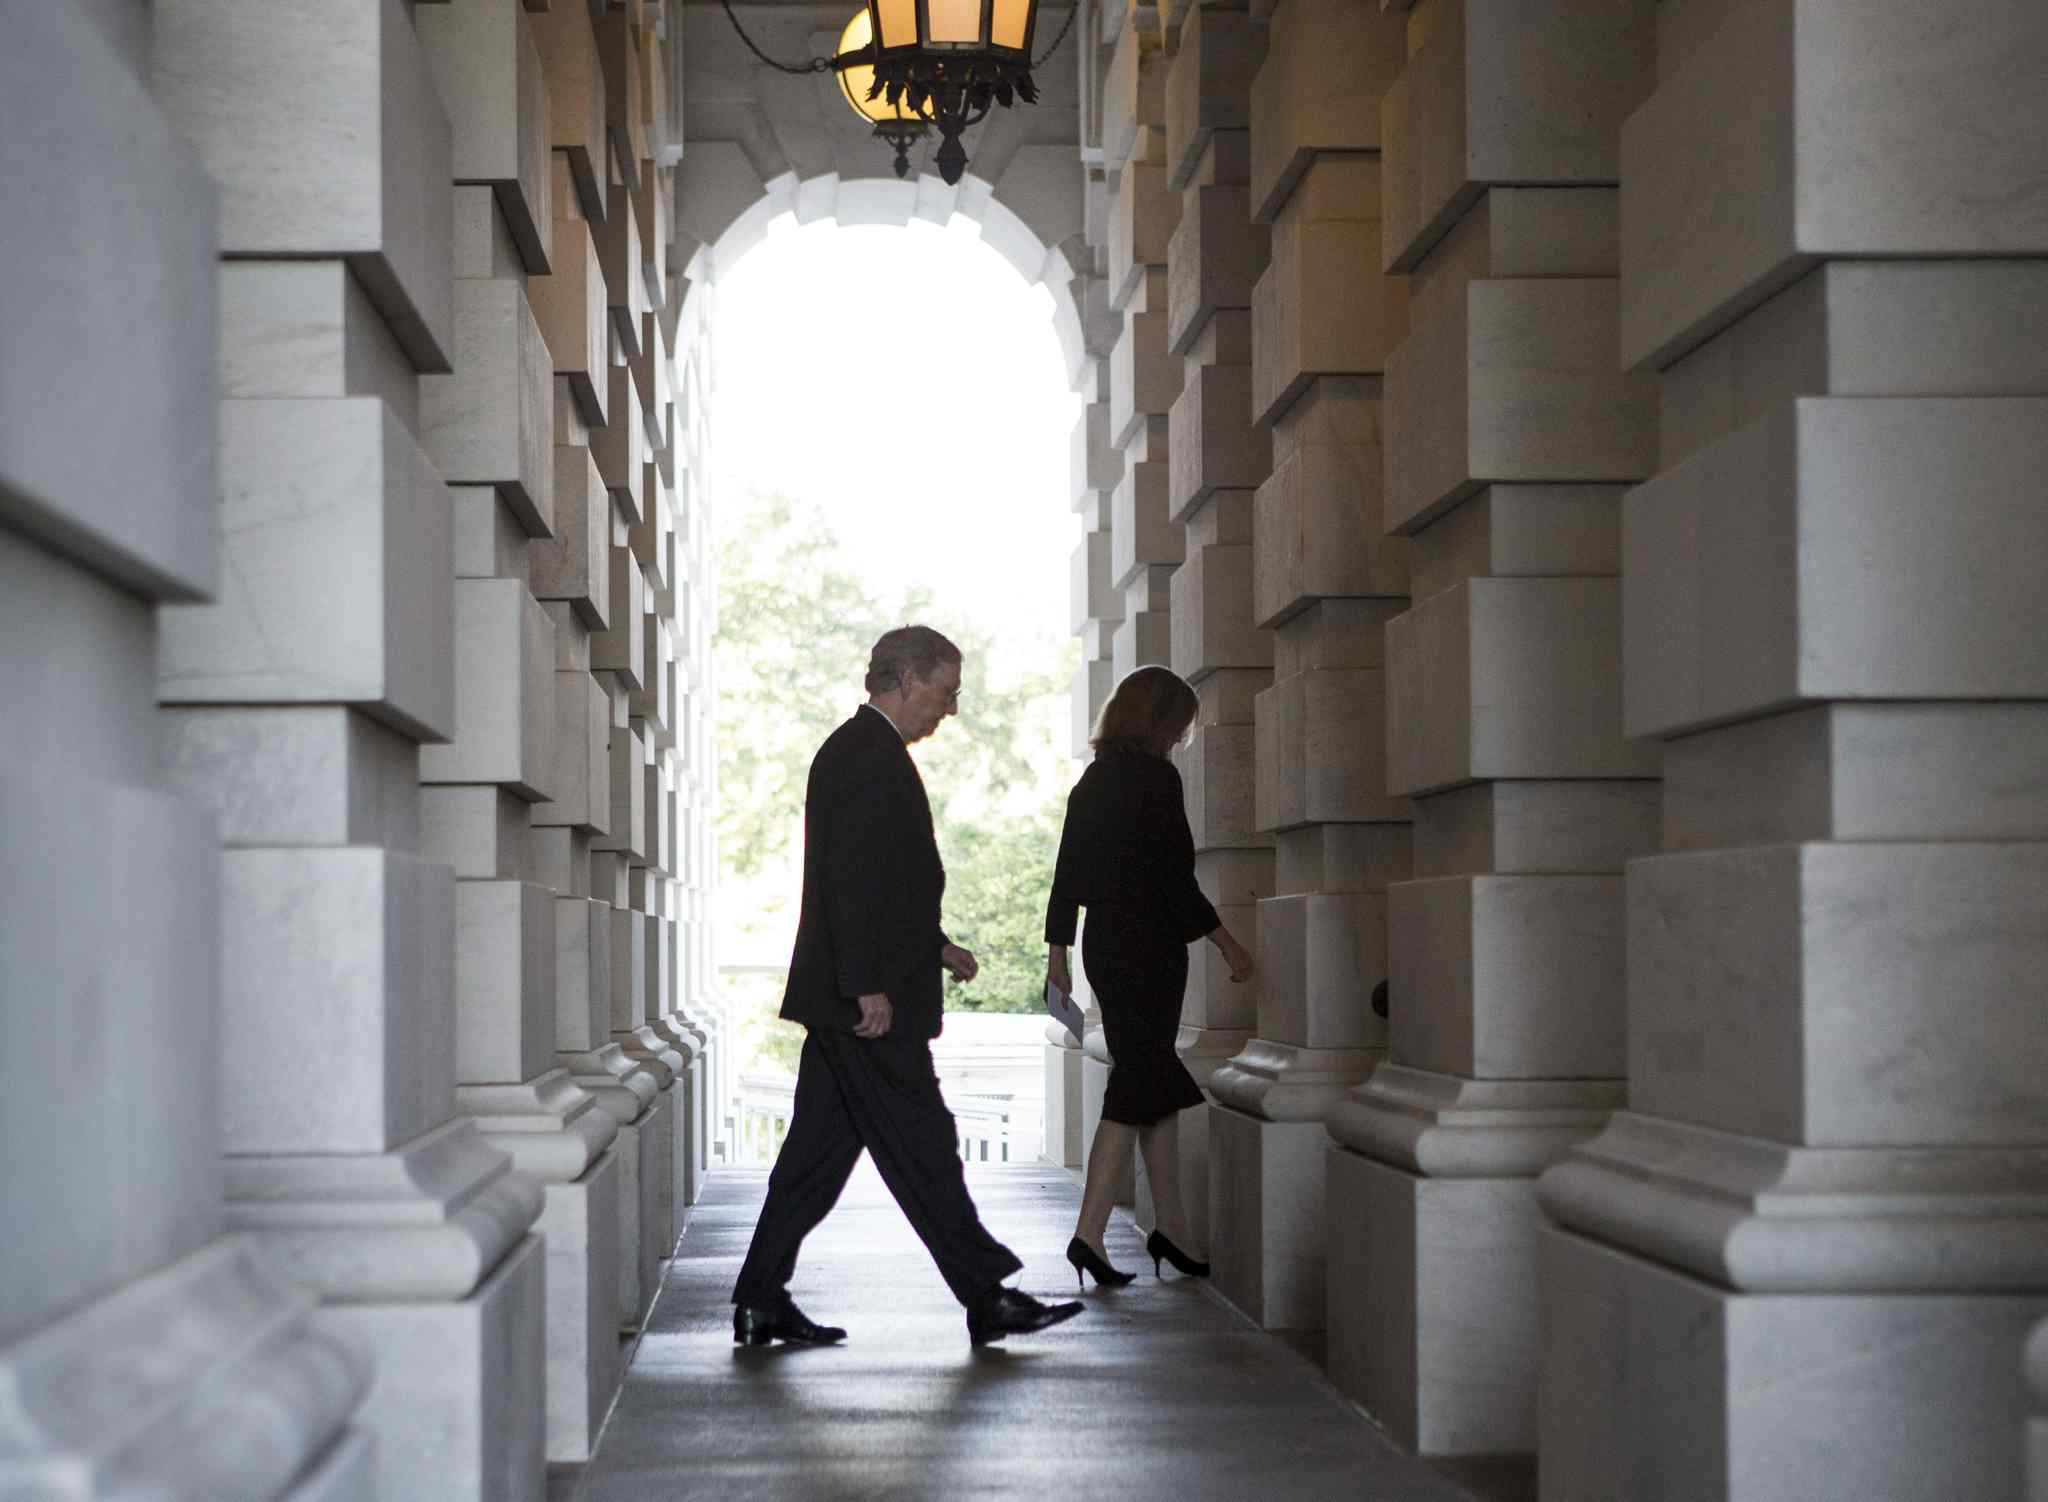 Senate Minority Leader Mitch McConnell, R-Ky., departs the Capitol en route to the White House for an ultimately fruitless meeting with U.S. President Barack Obama.